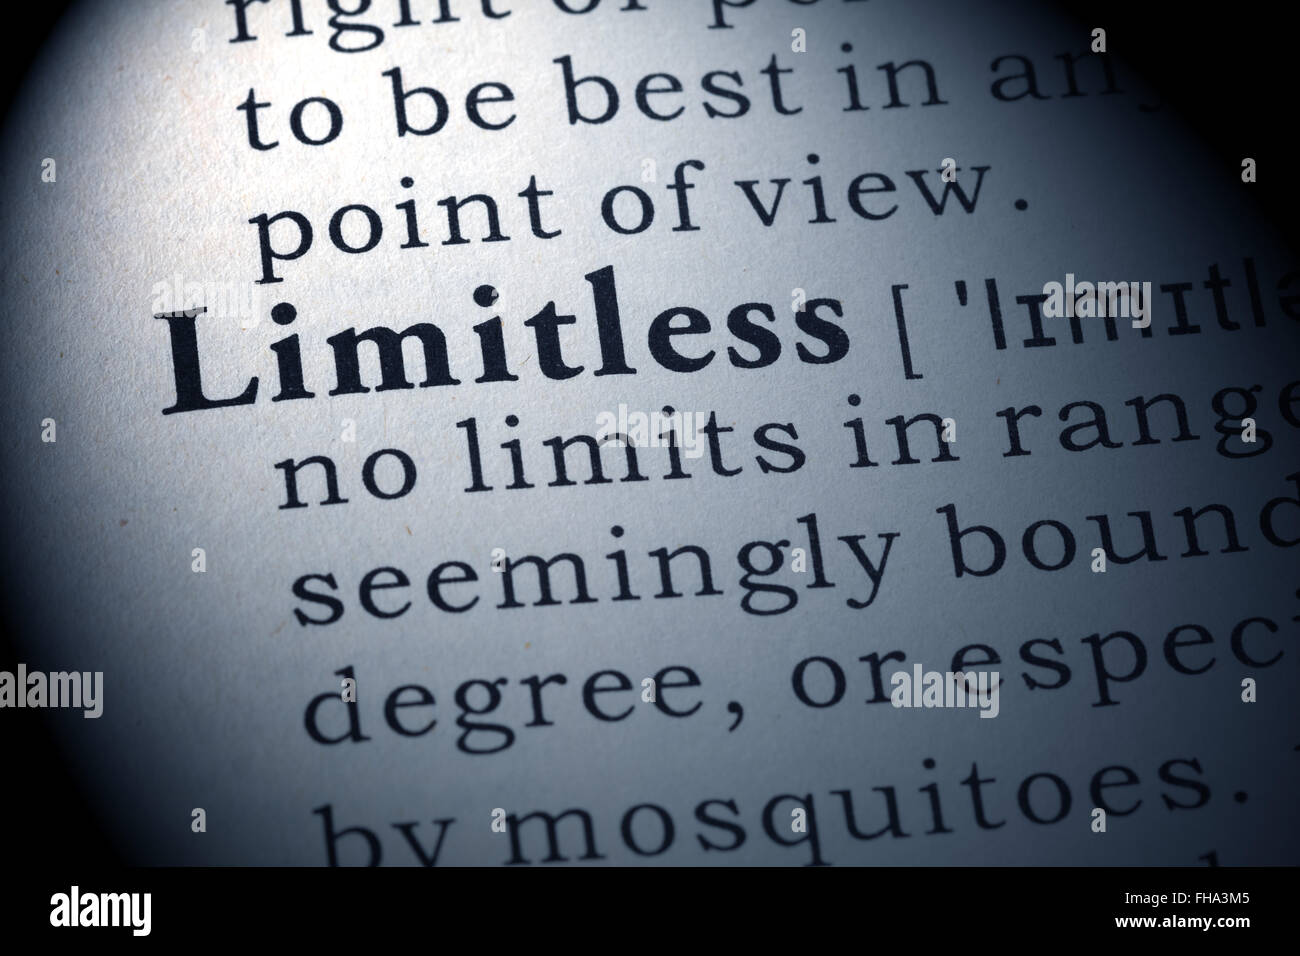 Fake Dictionary, Dictionary definition of the word Limitless. - Stock Image